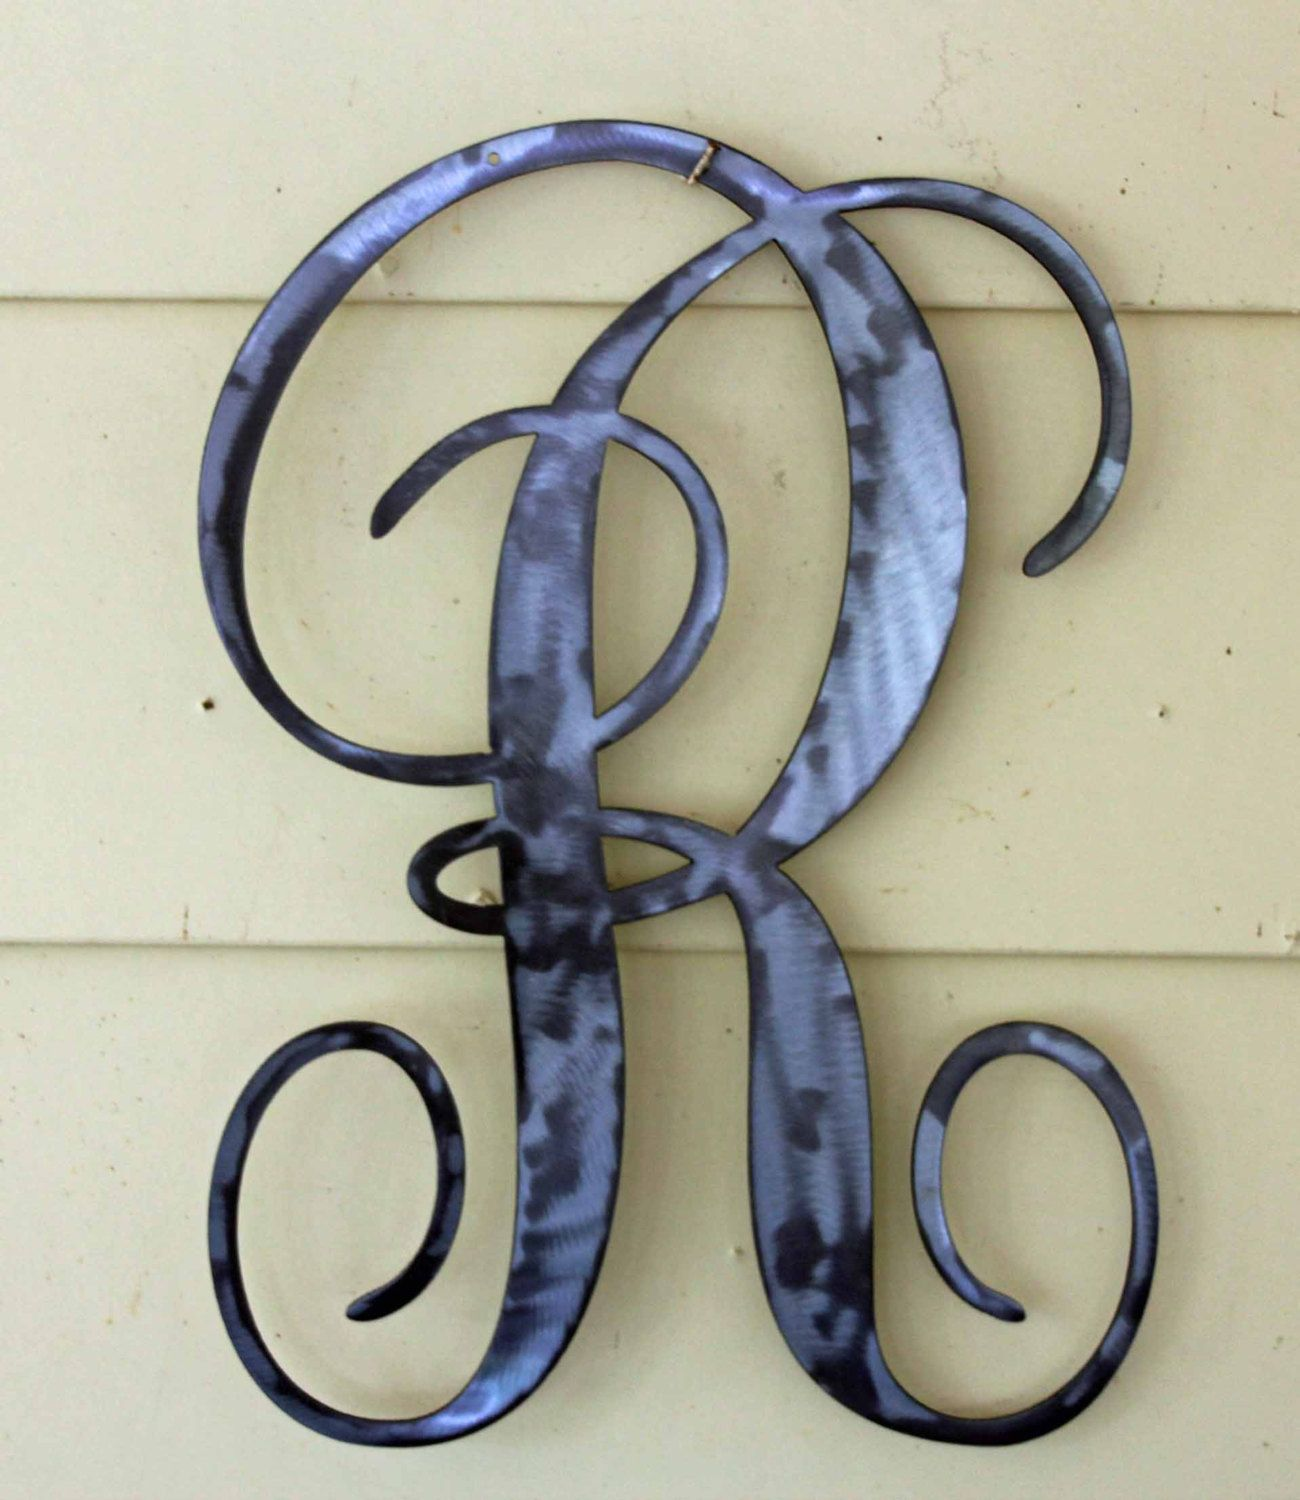 "Metal Initials Wall Hanging Classy Polished Metal Letter ""r"" In Script Door Or Wall Hanging. Design Decoration"